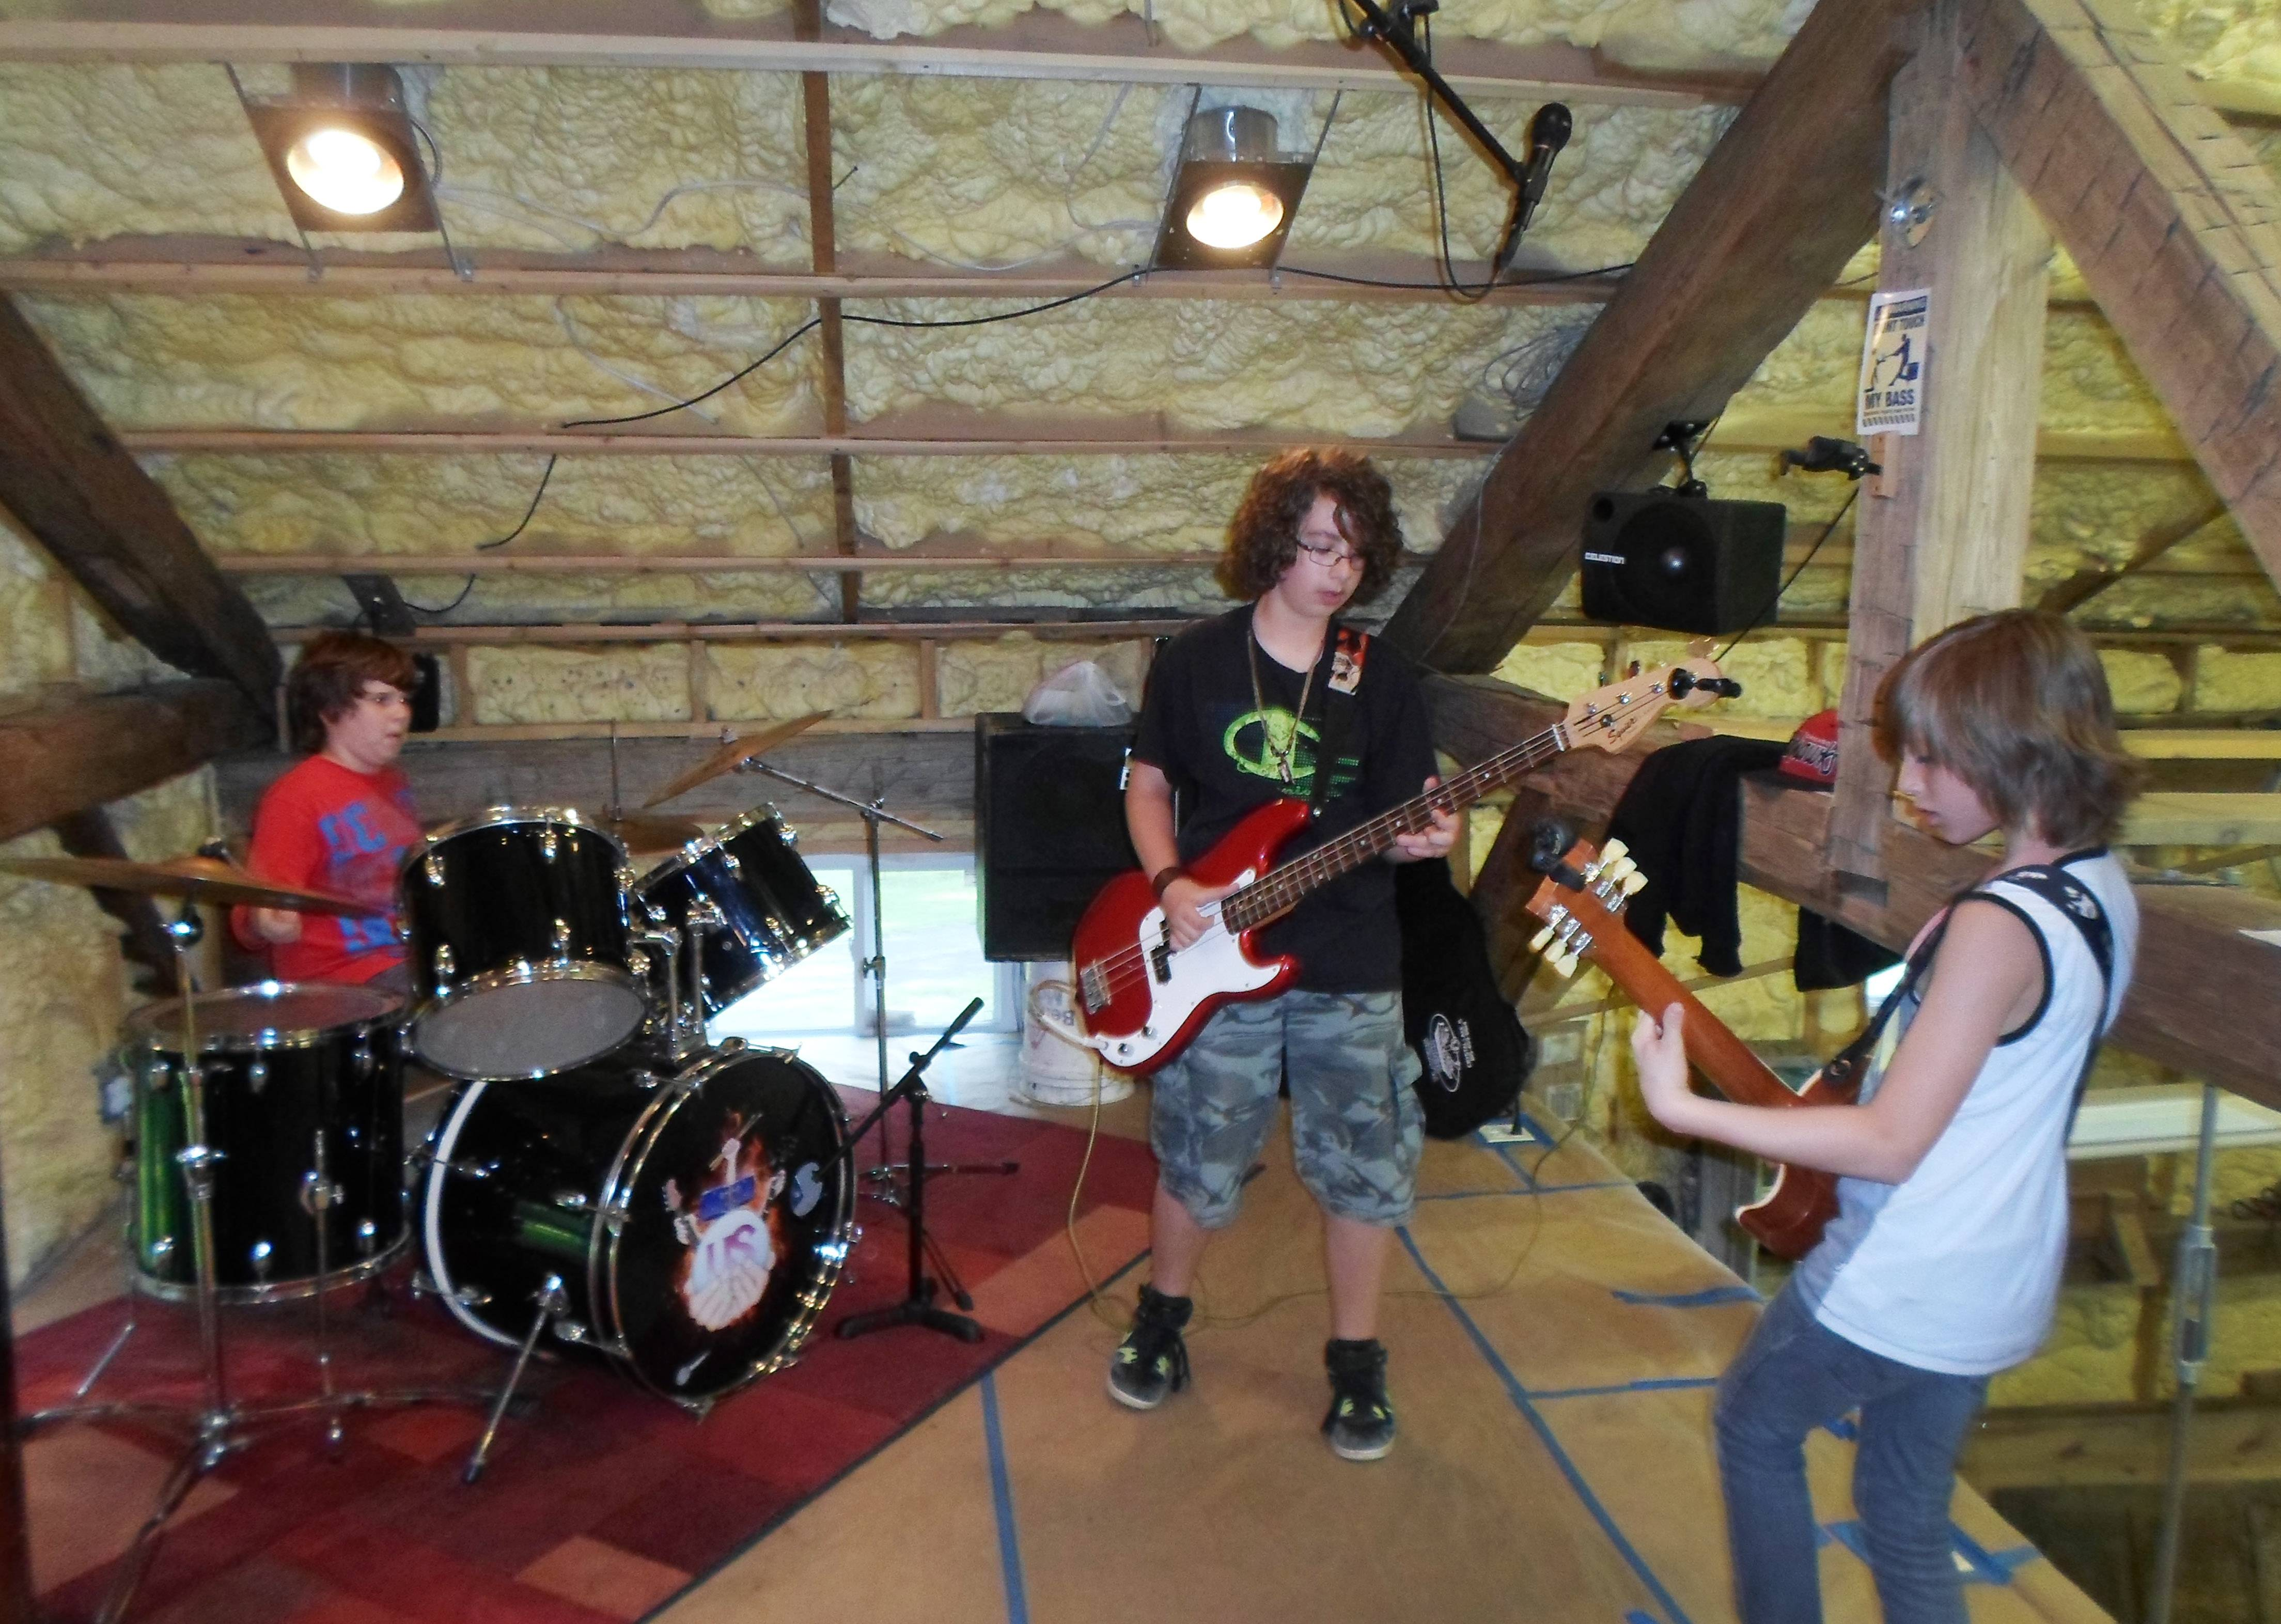 Member of the band US from Rhys Junas, left, Ryan Zurick and Axel Ellis rehearse a song.